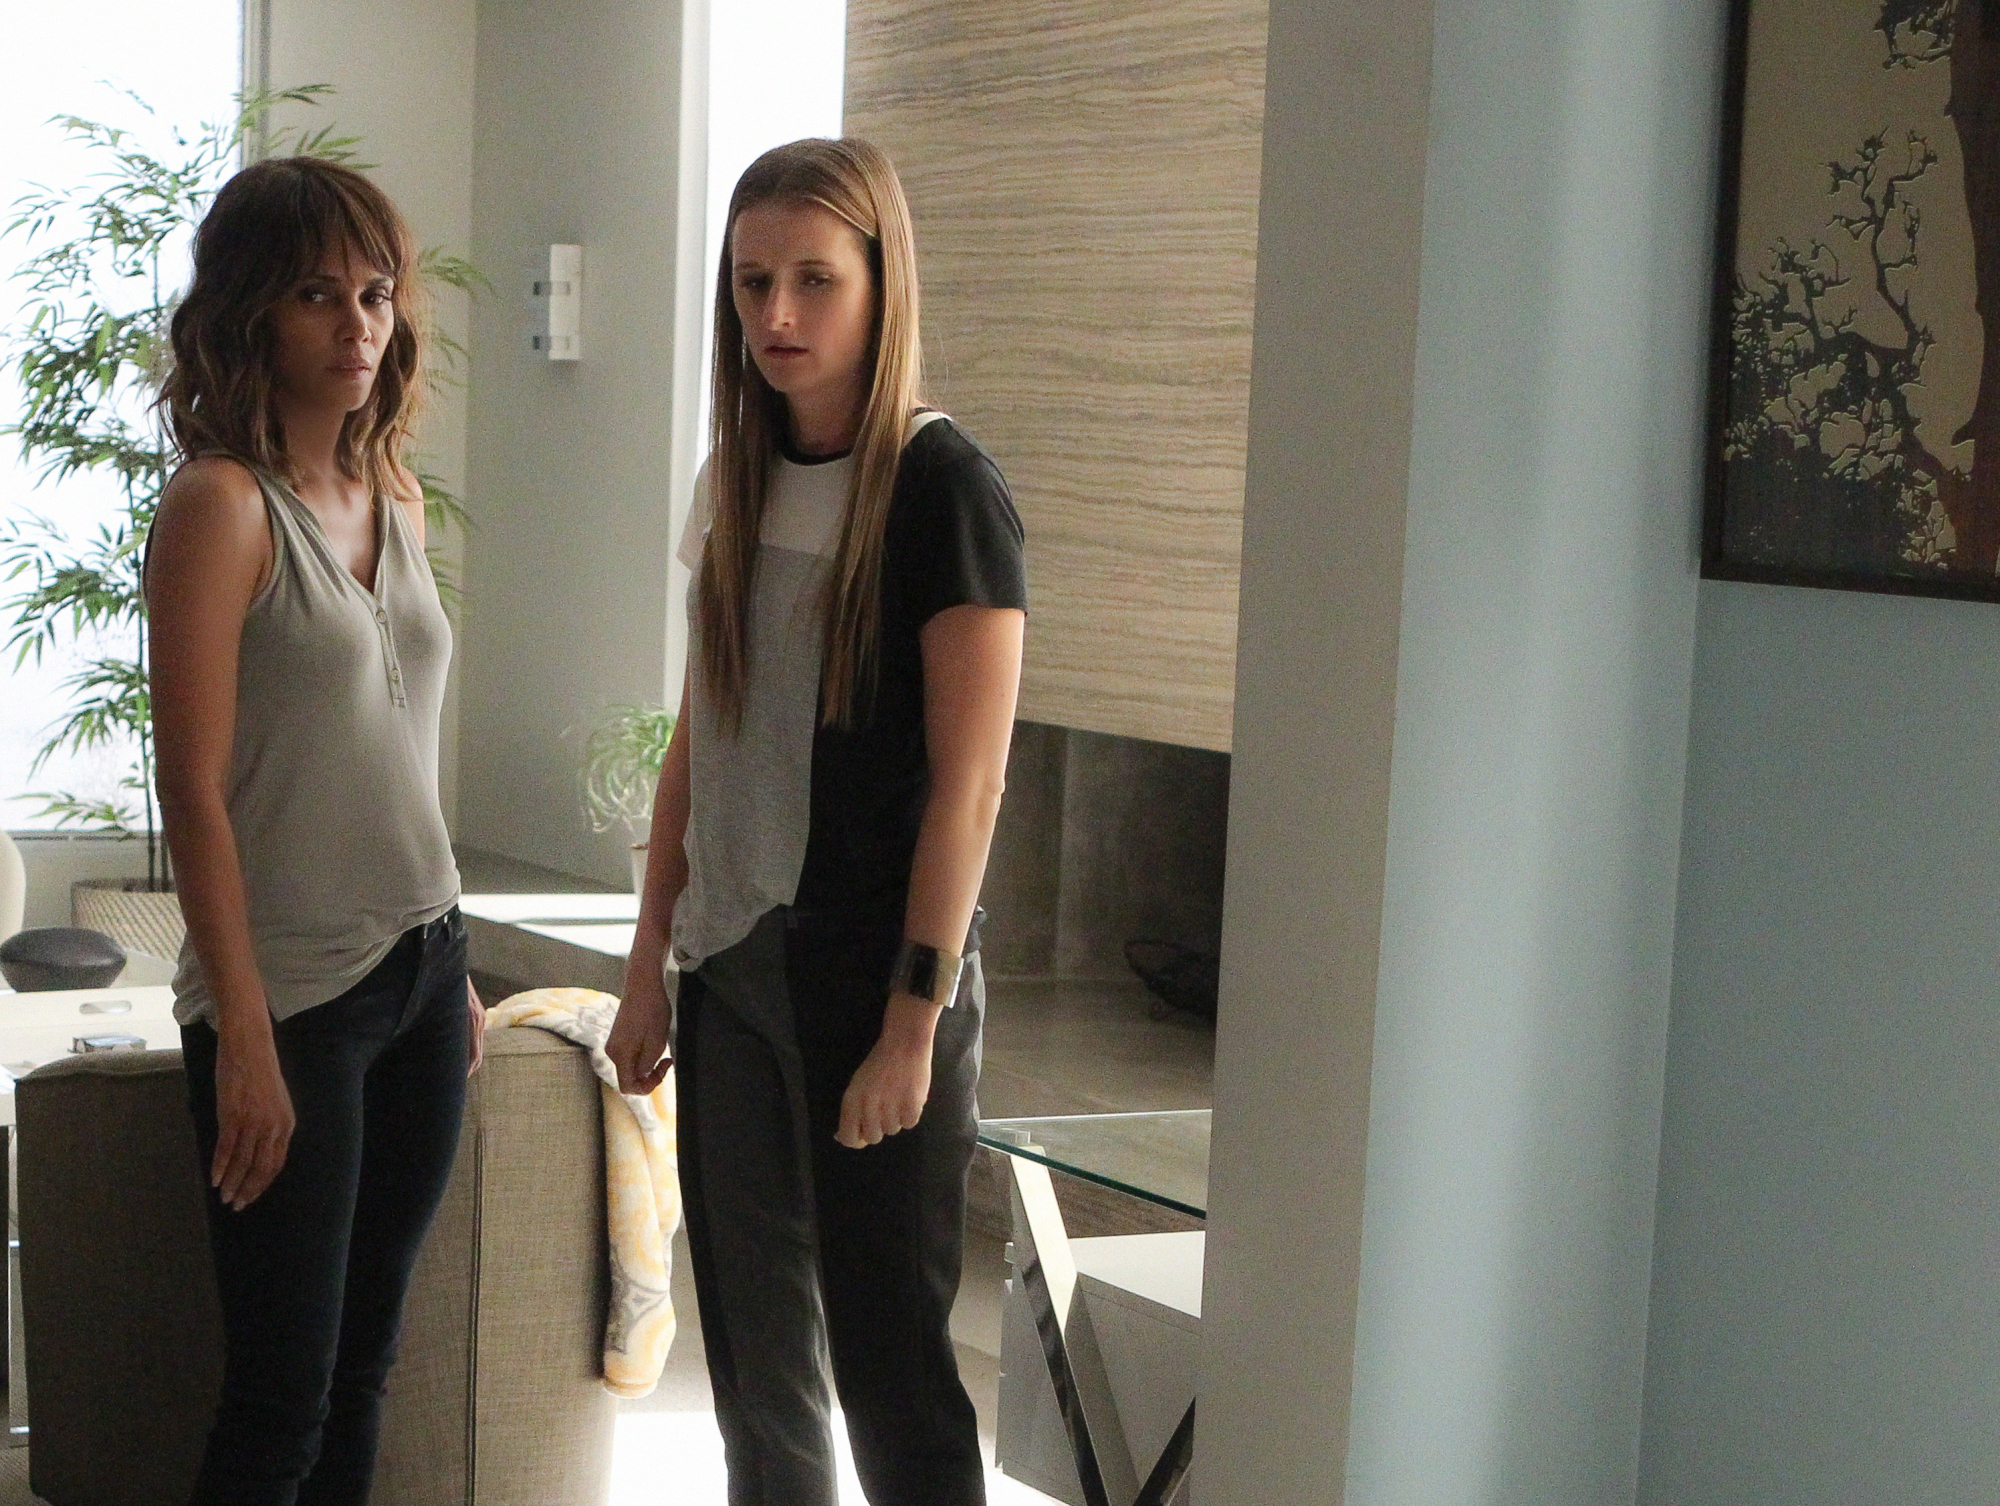 Halle Berry as Molly Woods and Grace Gummer as Julie Gelineau.